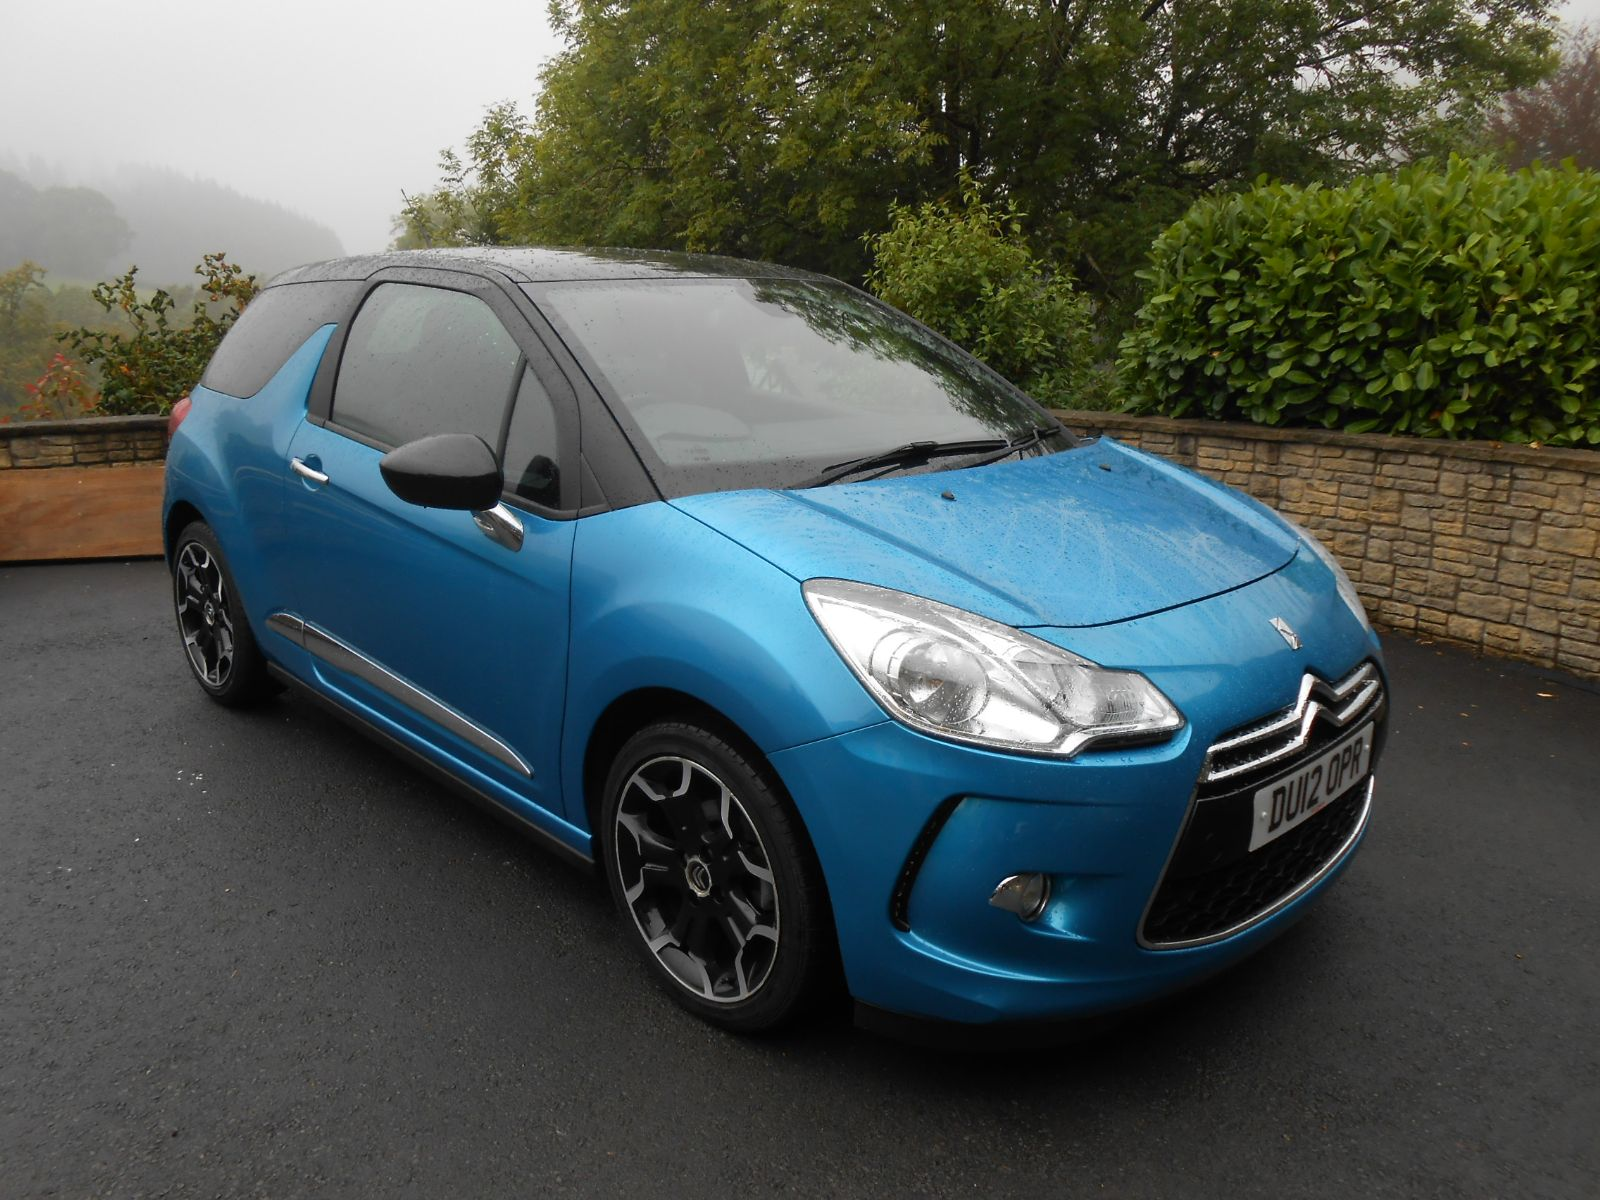 citroen ds3 1 6 vti dstyle 3 door car for sale llanidloes powys mid wales kevin jones cars. Black Bedroom Furniture Sets. Home Design Ideas